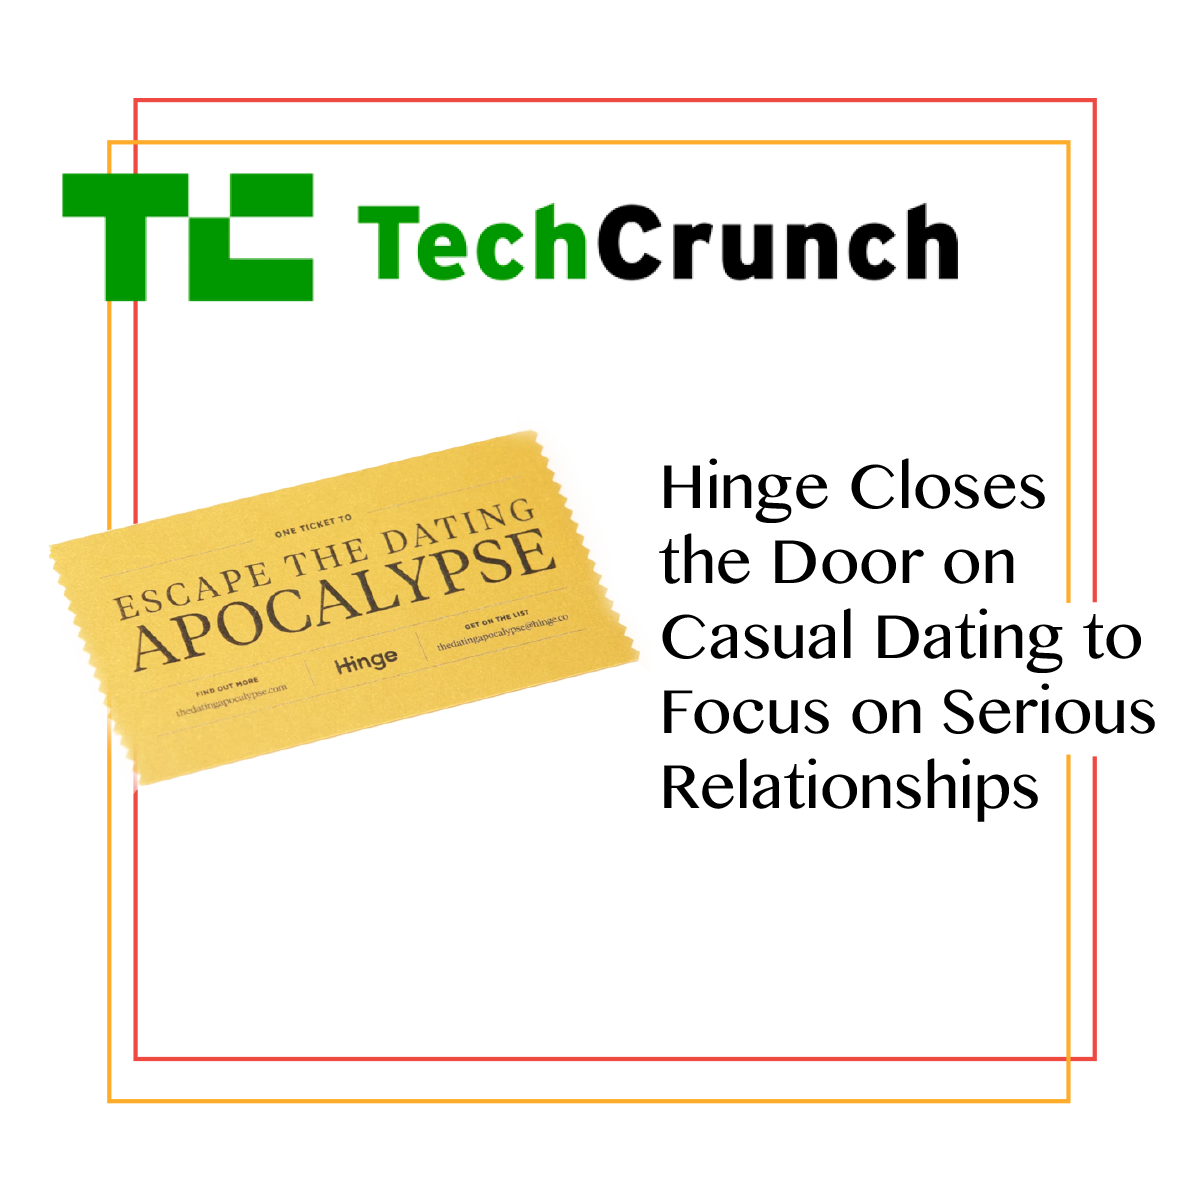 Tech Crunch + Hinge